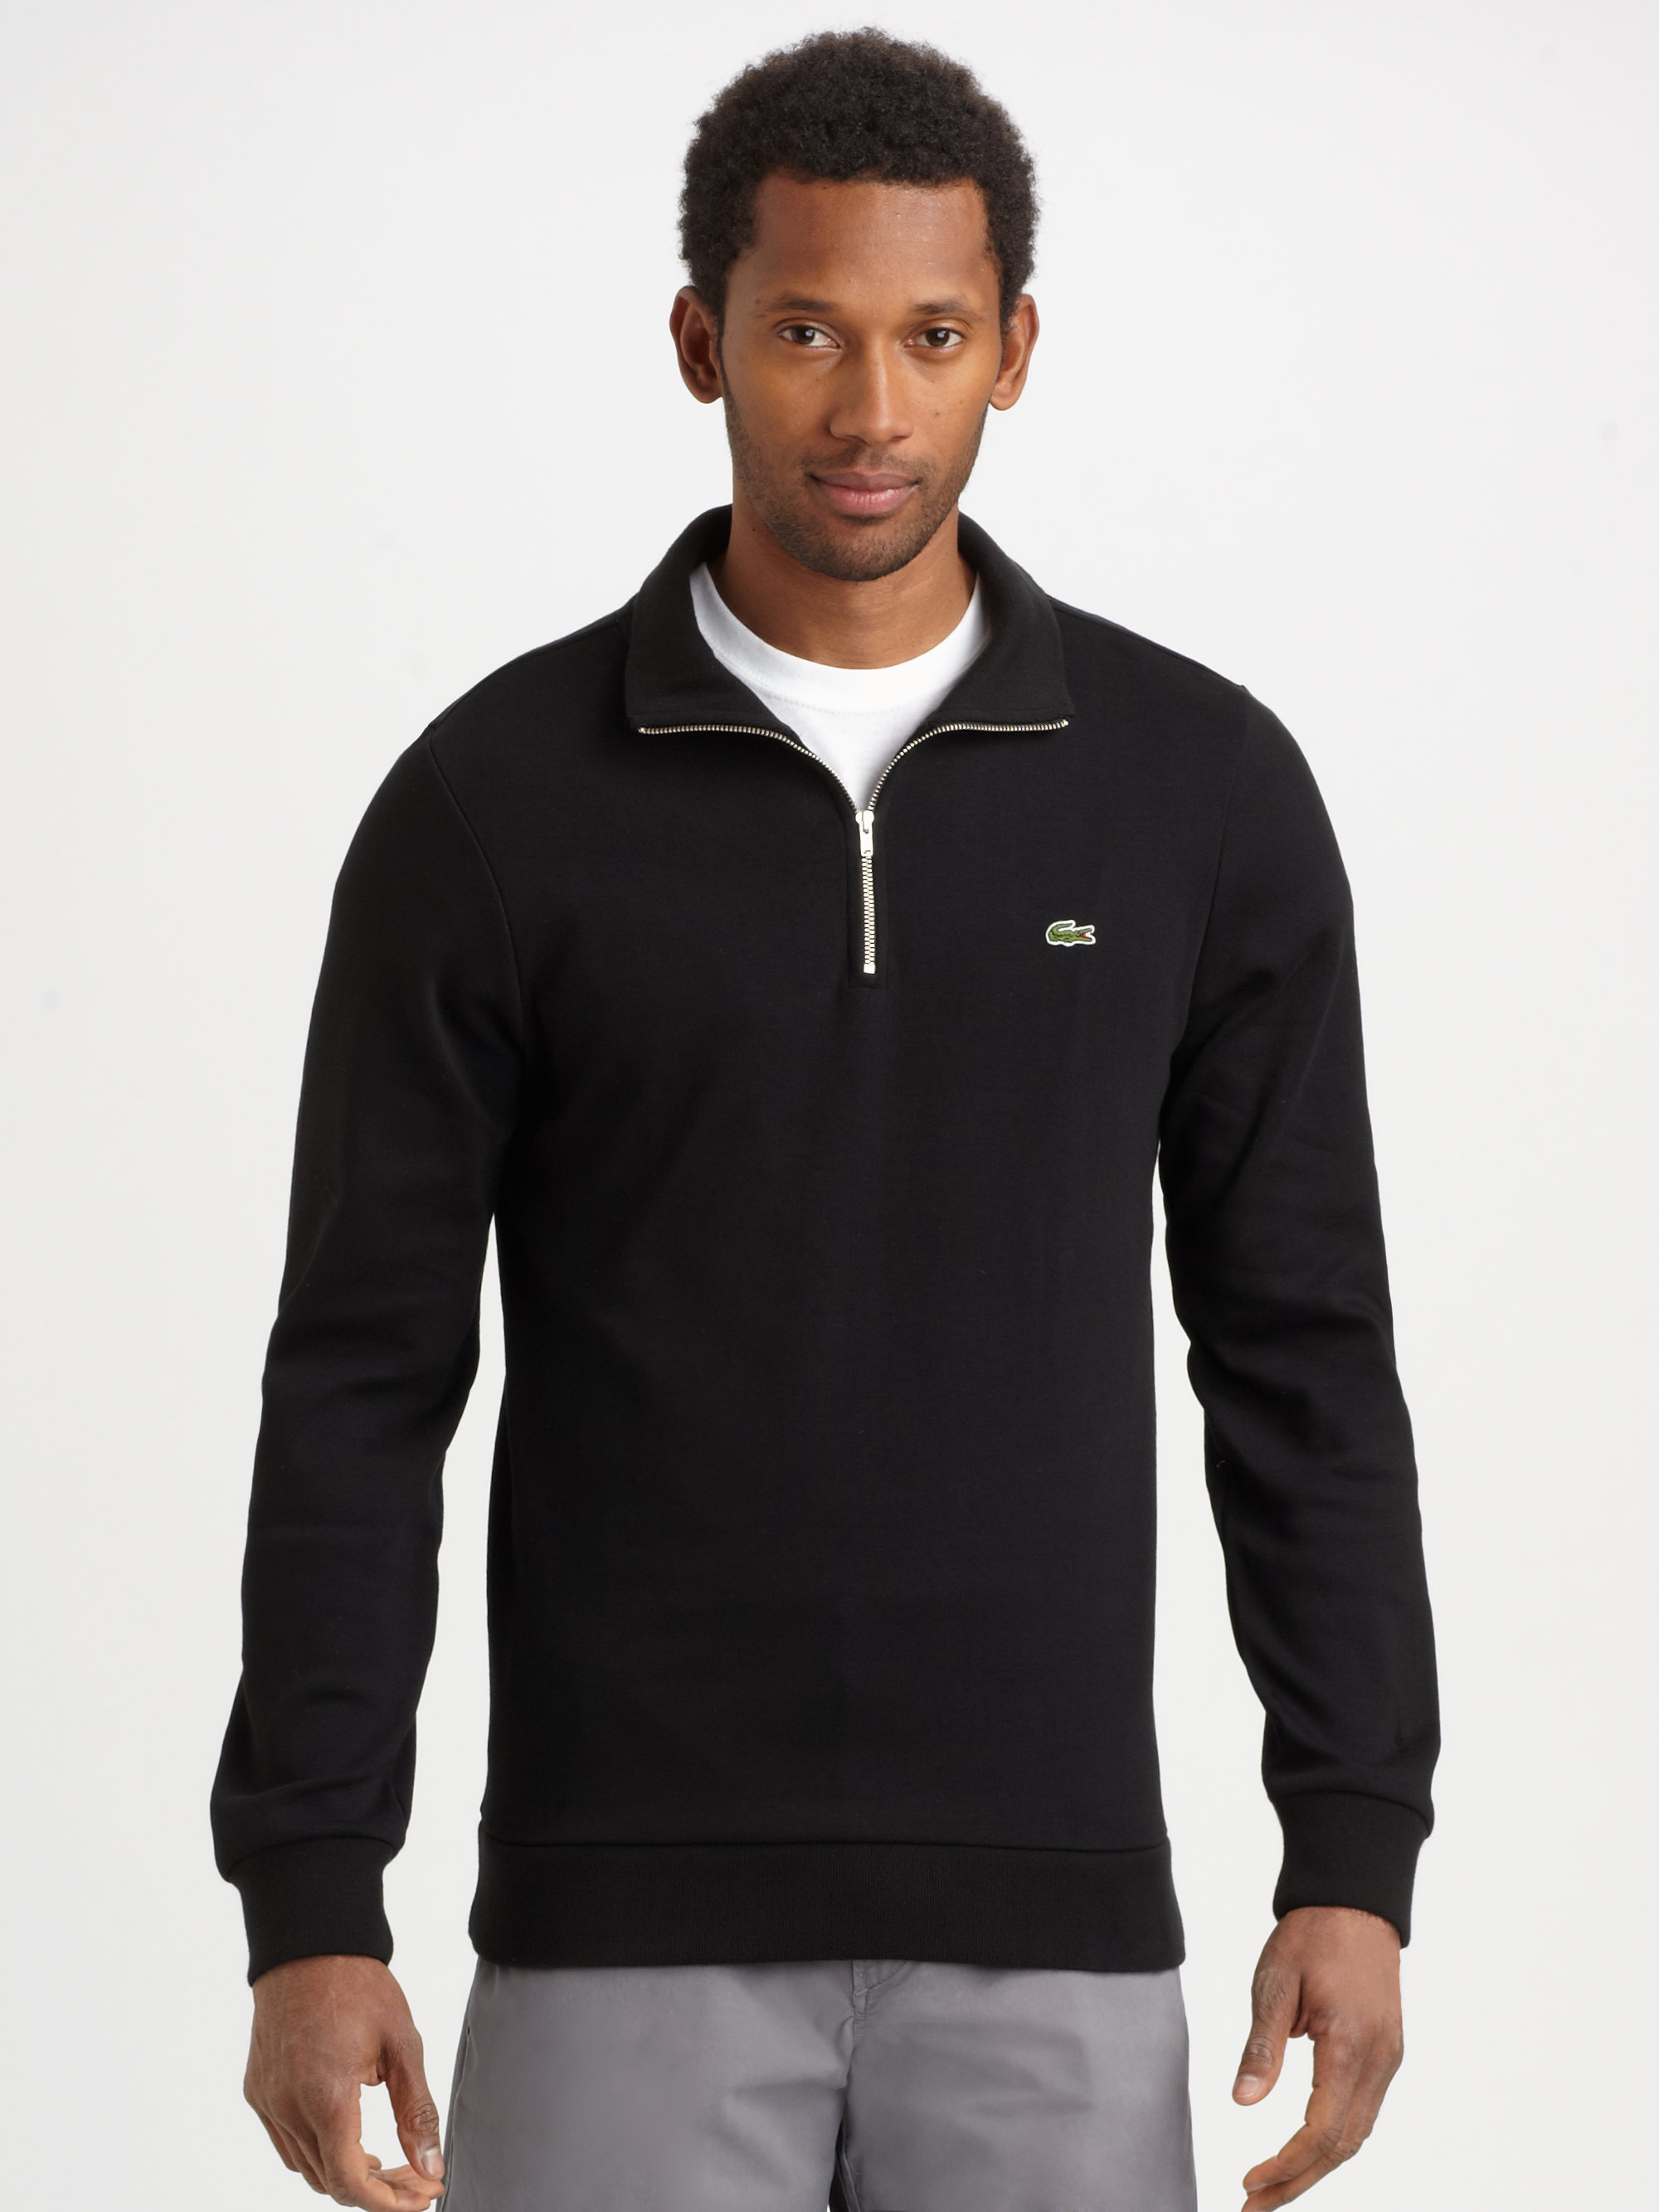 lacoste halfzip pullover in black for men lyst. Black Bedroom Furniture Sets. Home Design Ideas